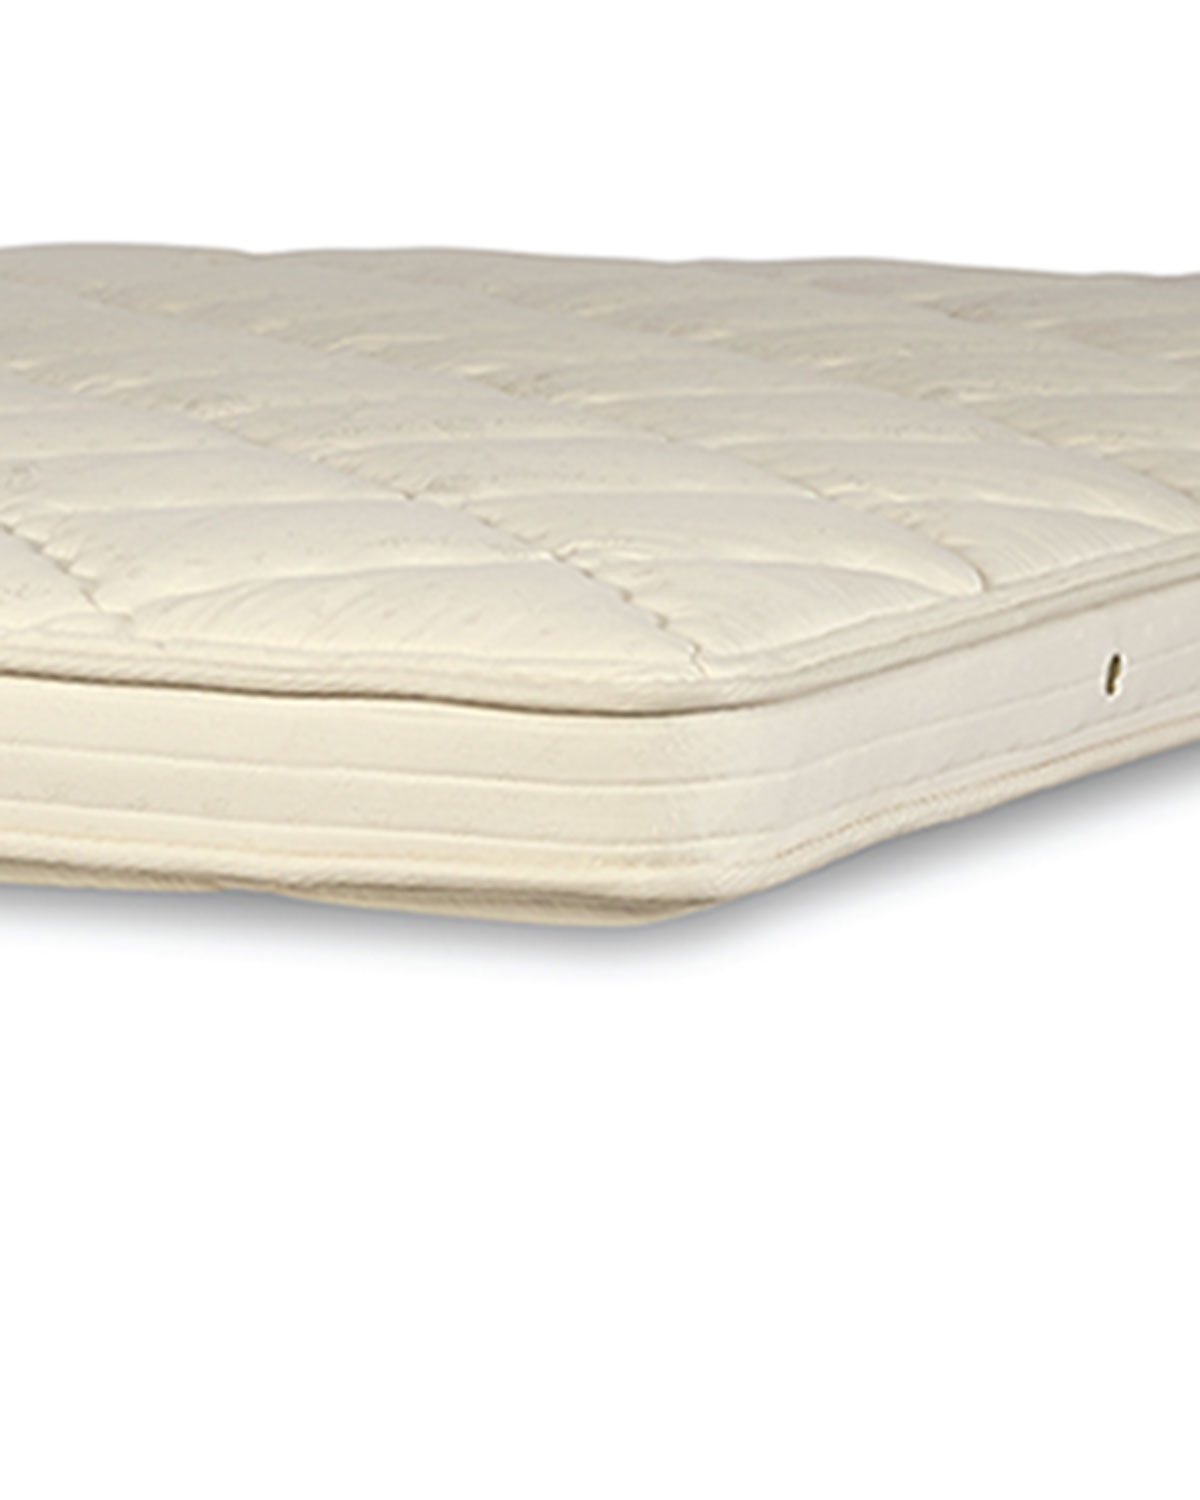 Royal-Pedic Dream Spring Deluxe Pillow Top Pad - Queen